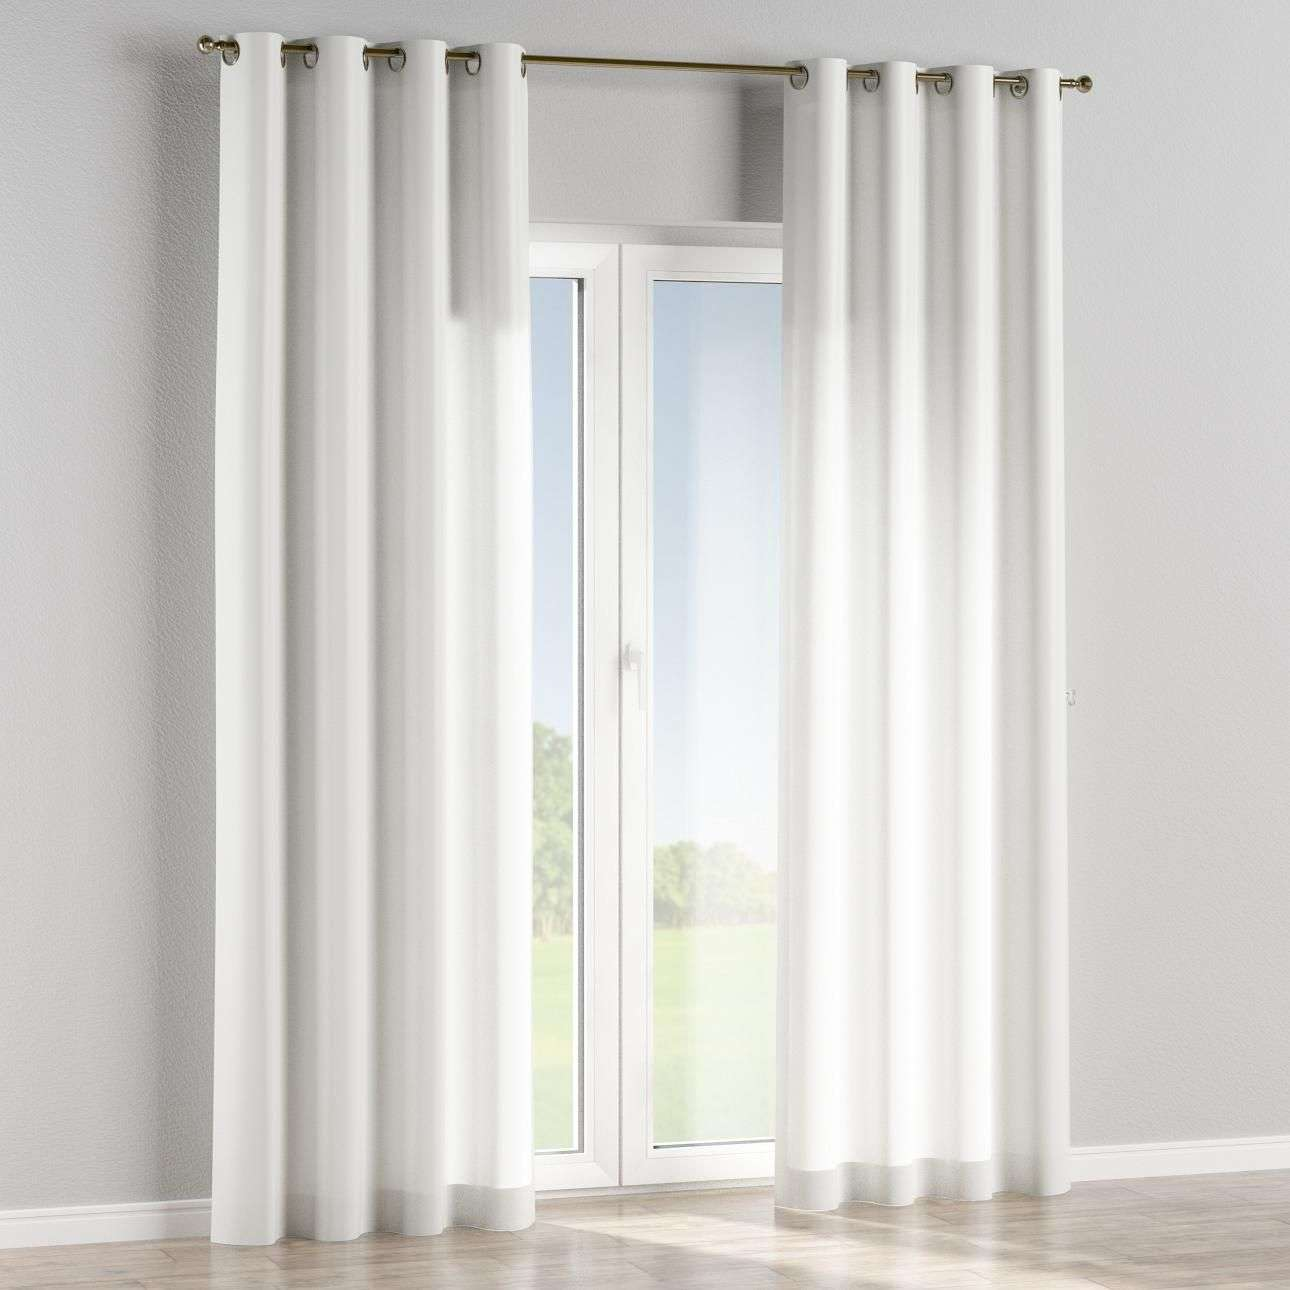 Eyelet curtains in collection Mirella, fabric: 141-13